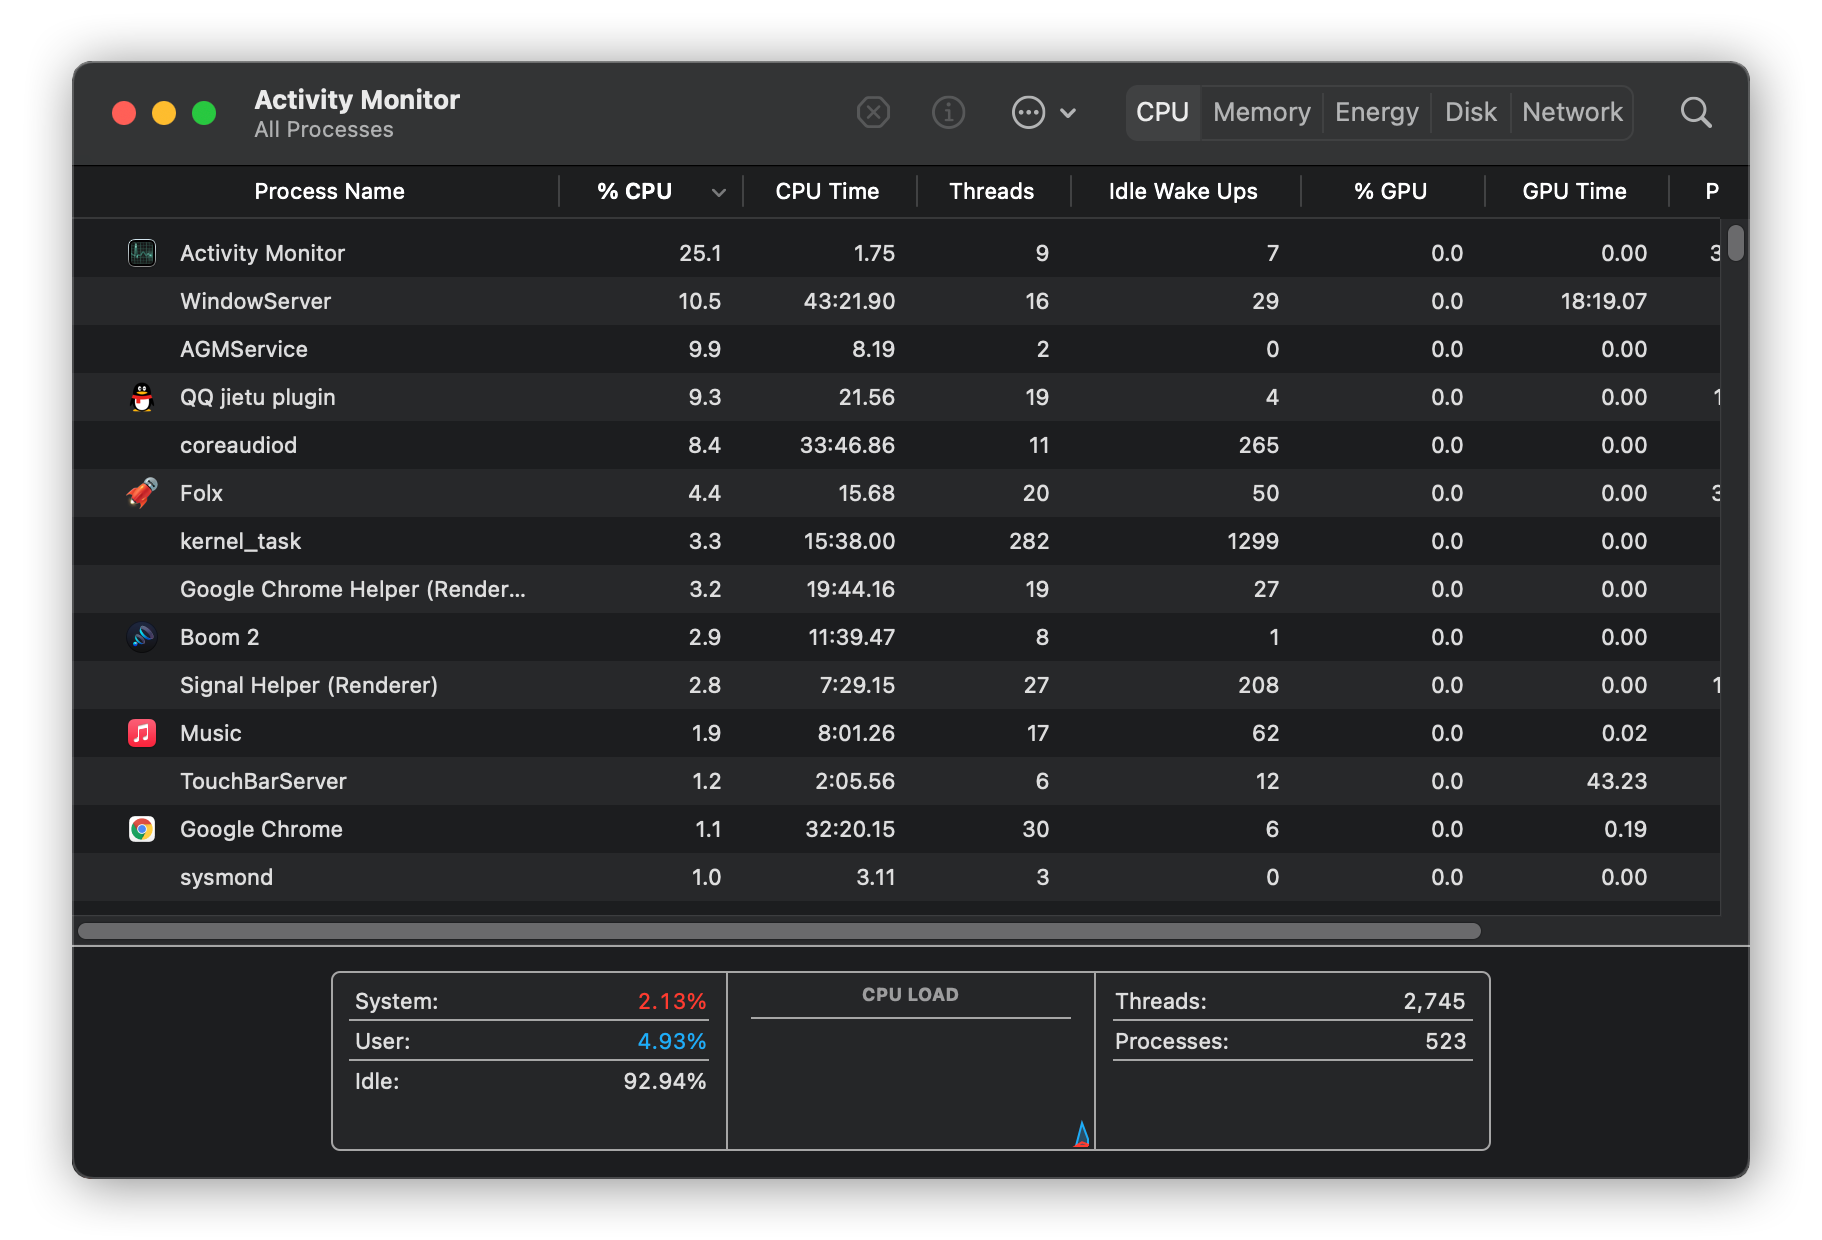 The Activity Manager in macOS